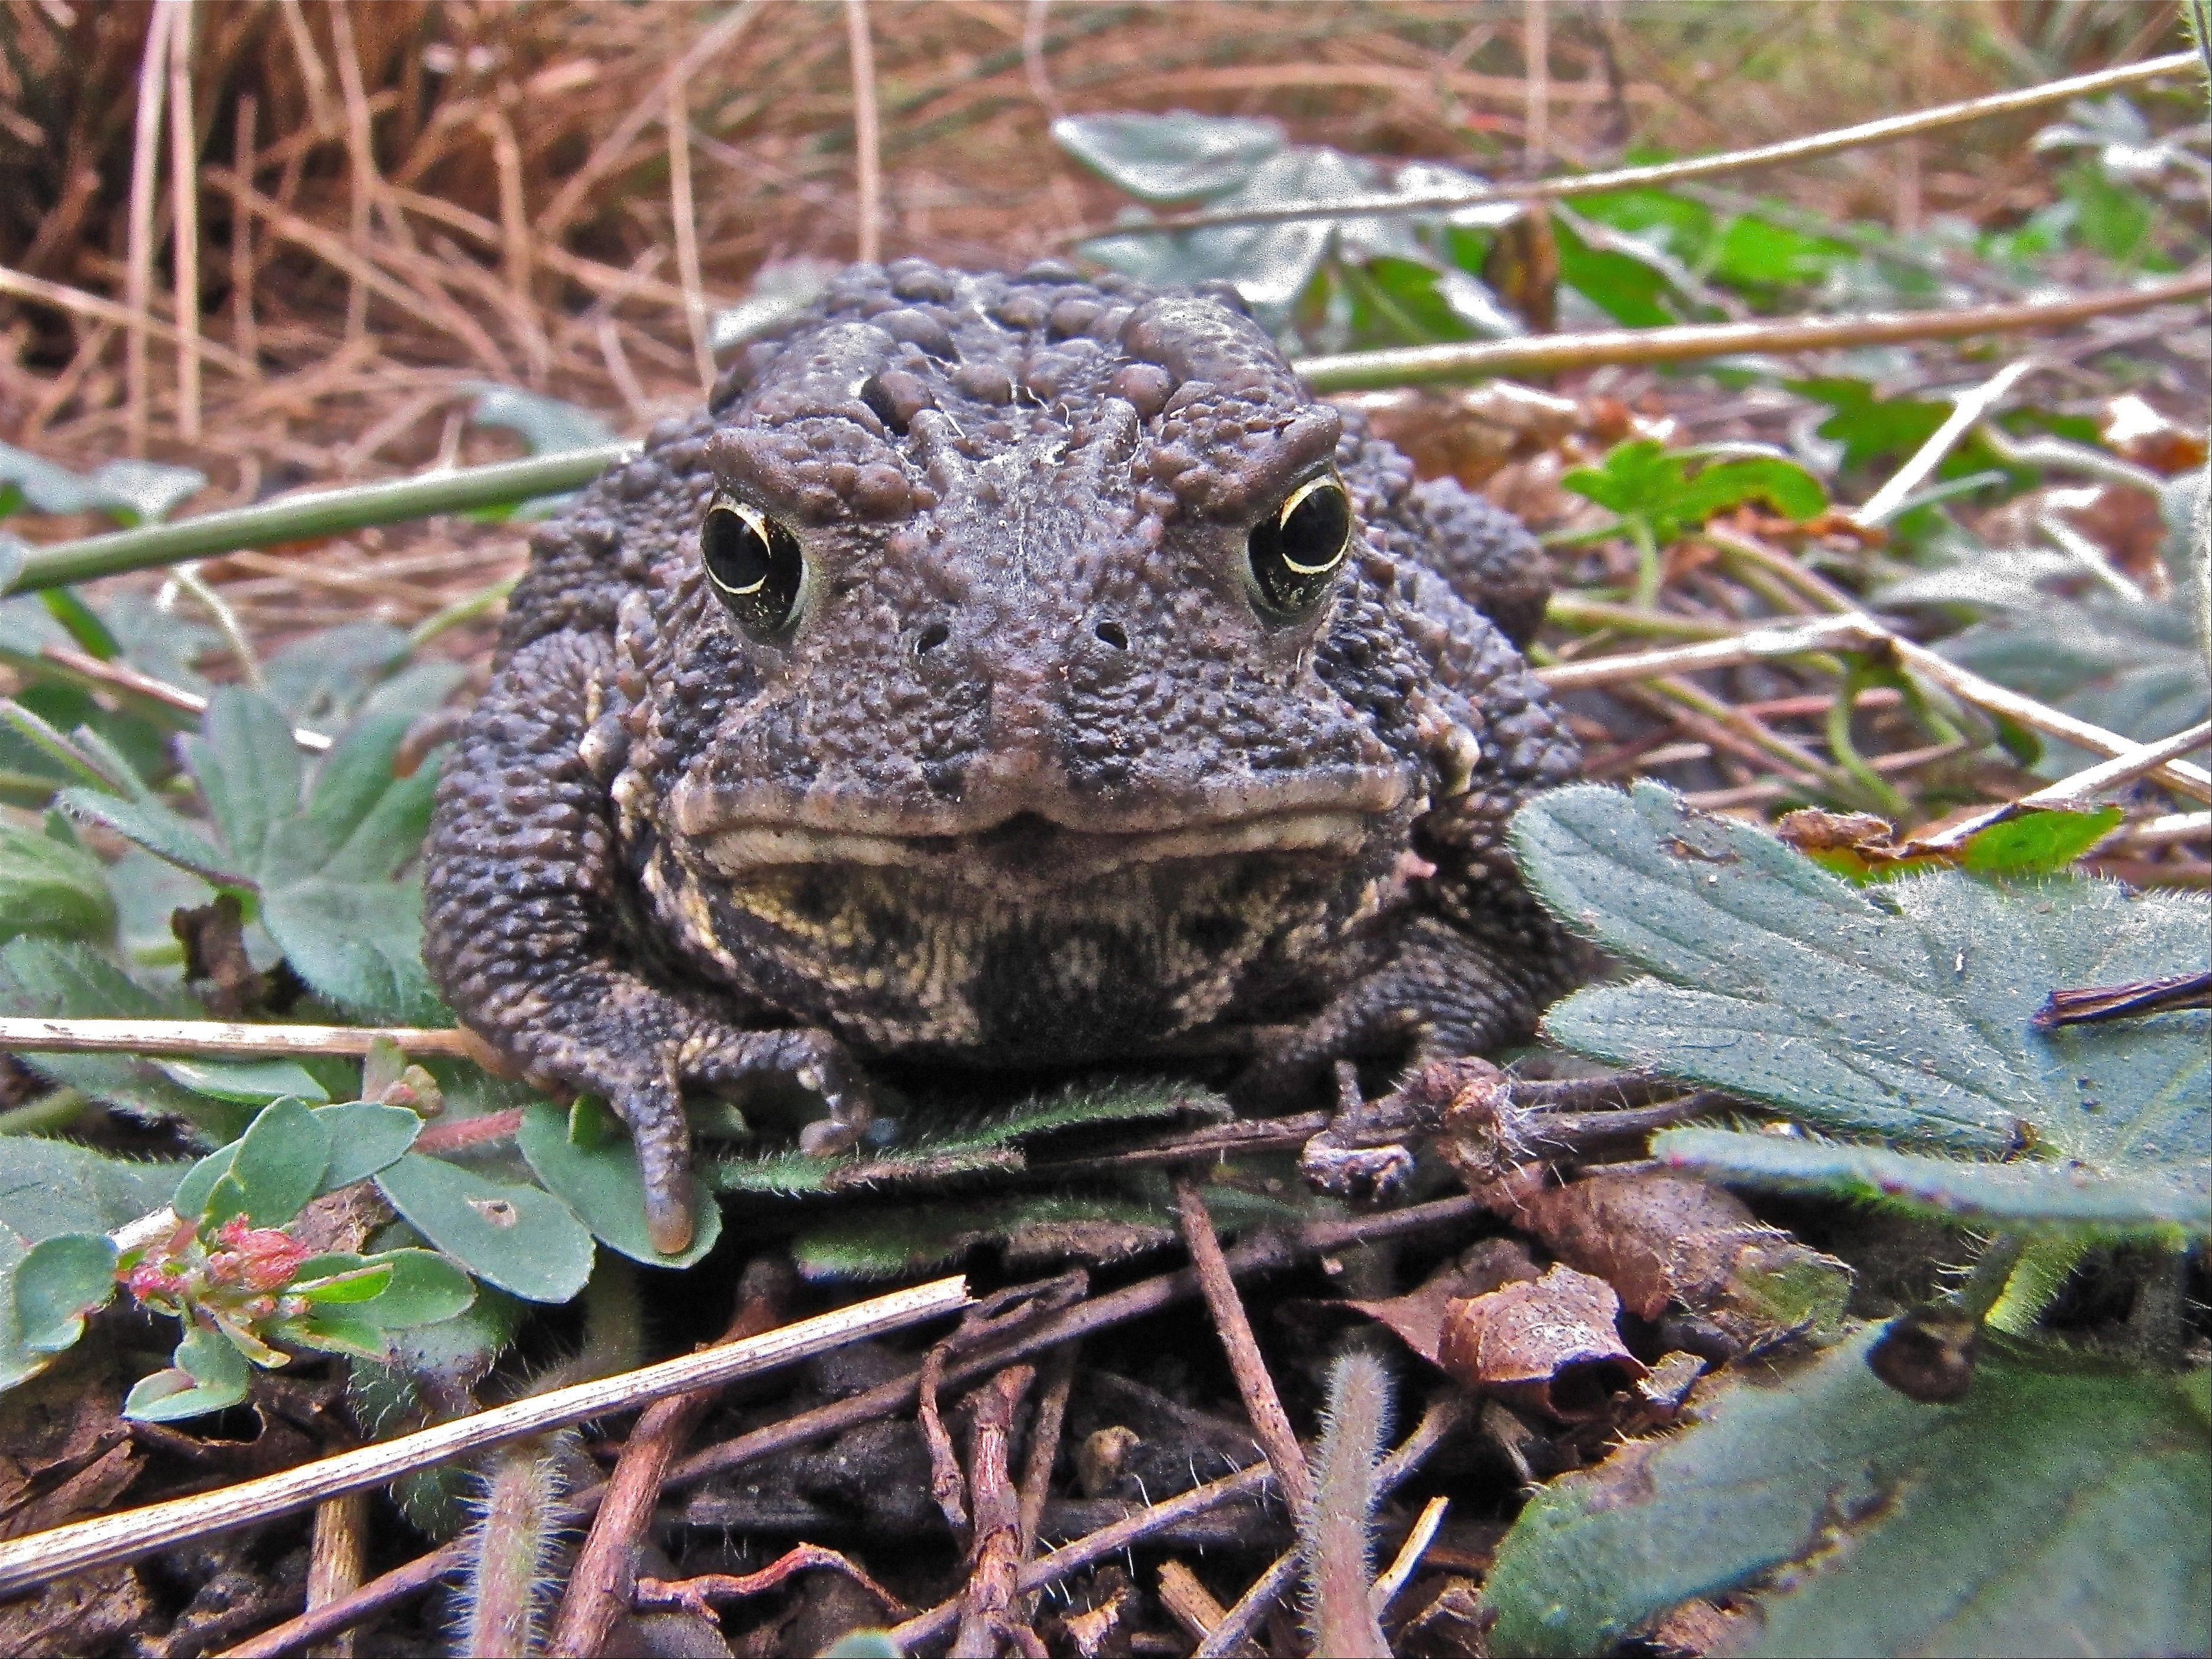 Cantigny Park visitors gave Clarendon Hills resident Mary Brown first place for her close-up photo of an American toad.